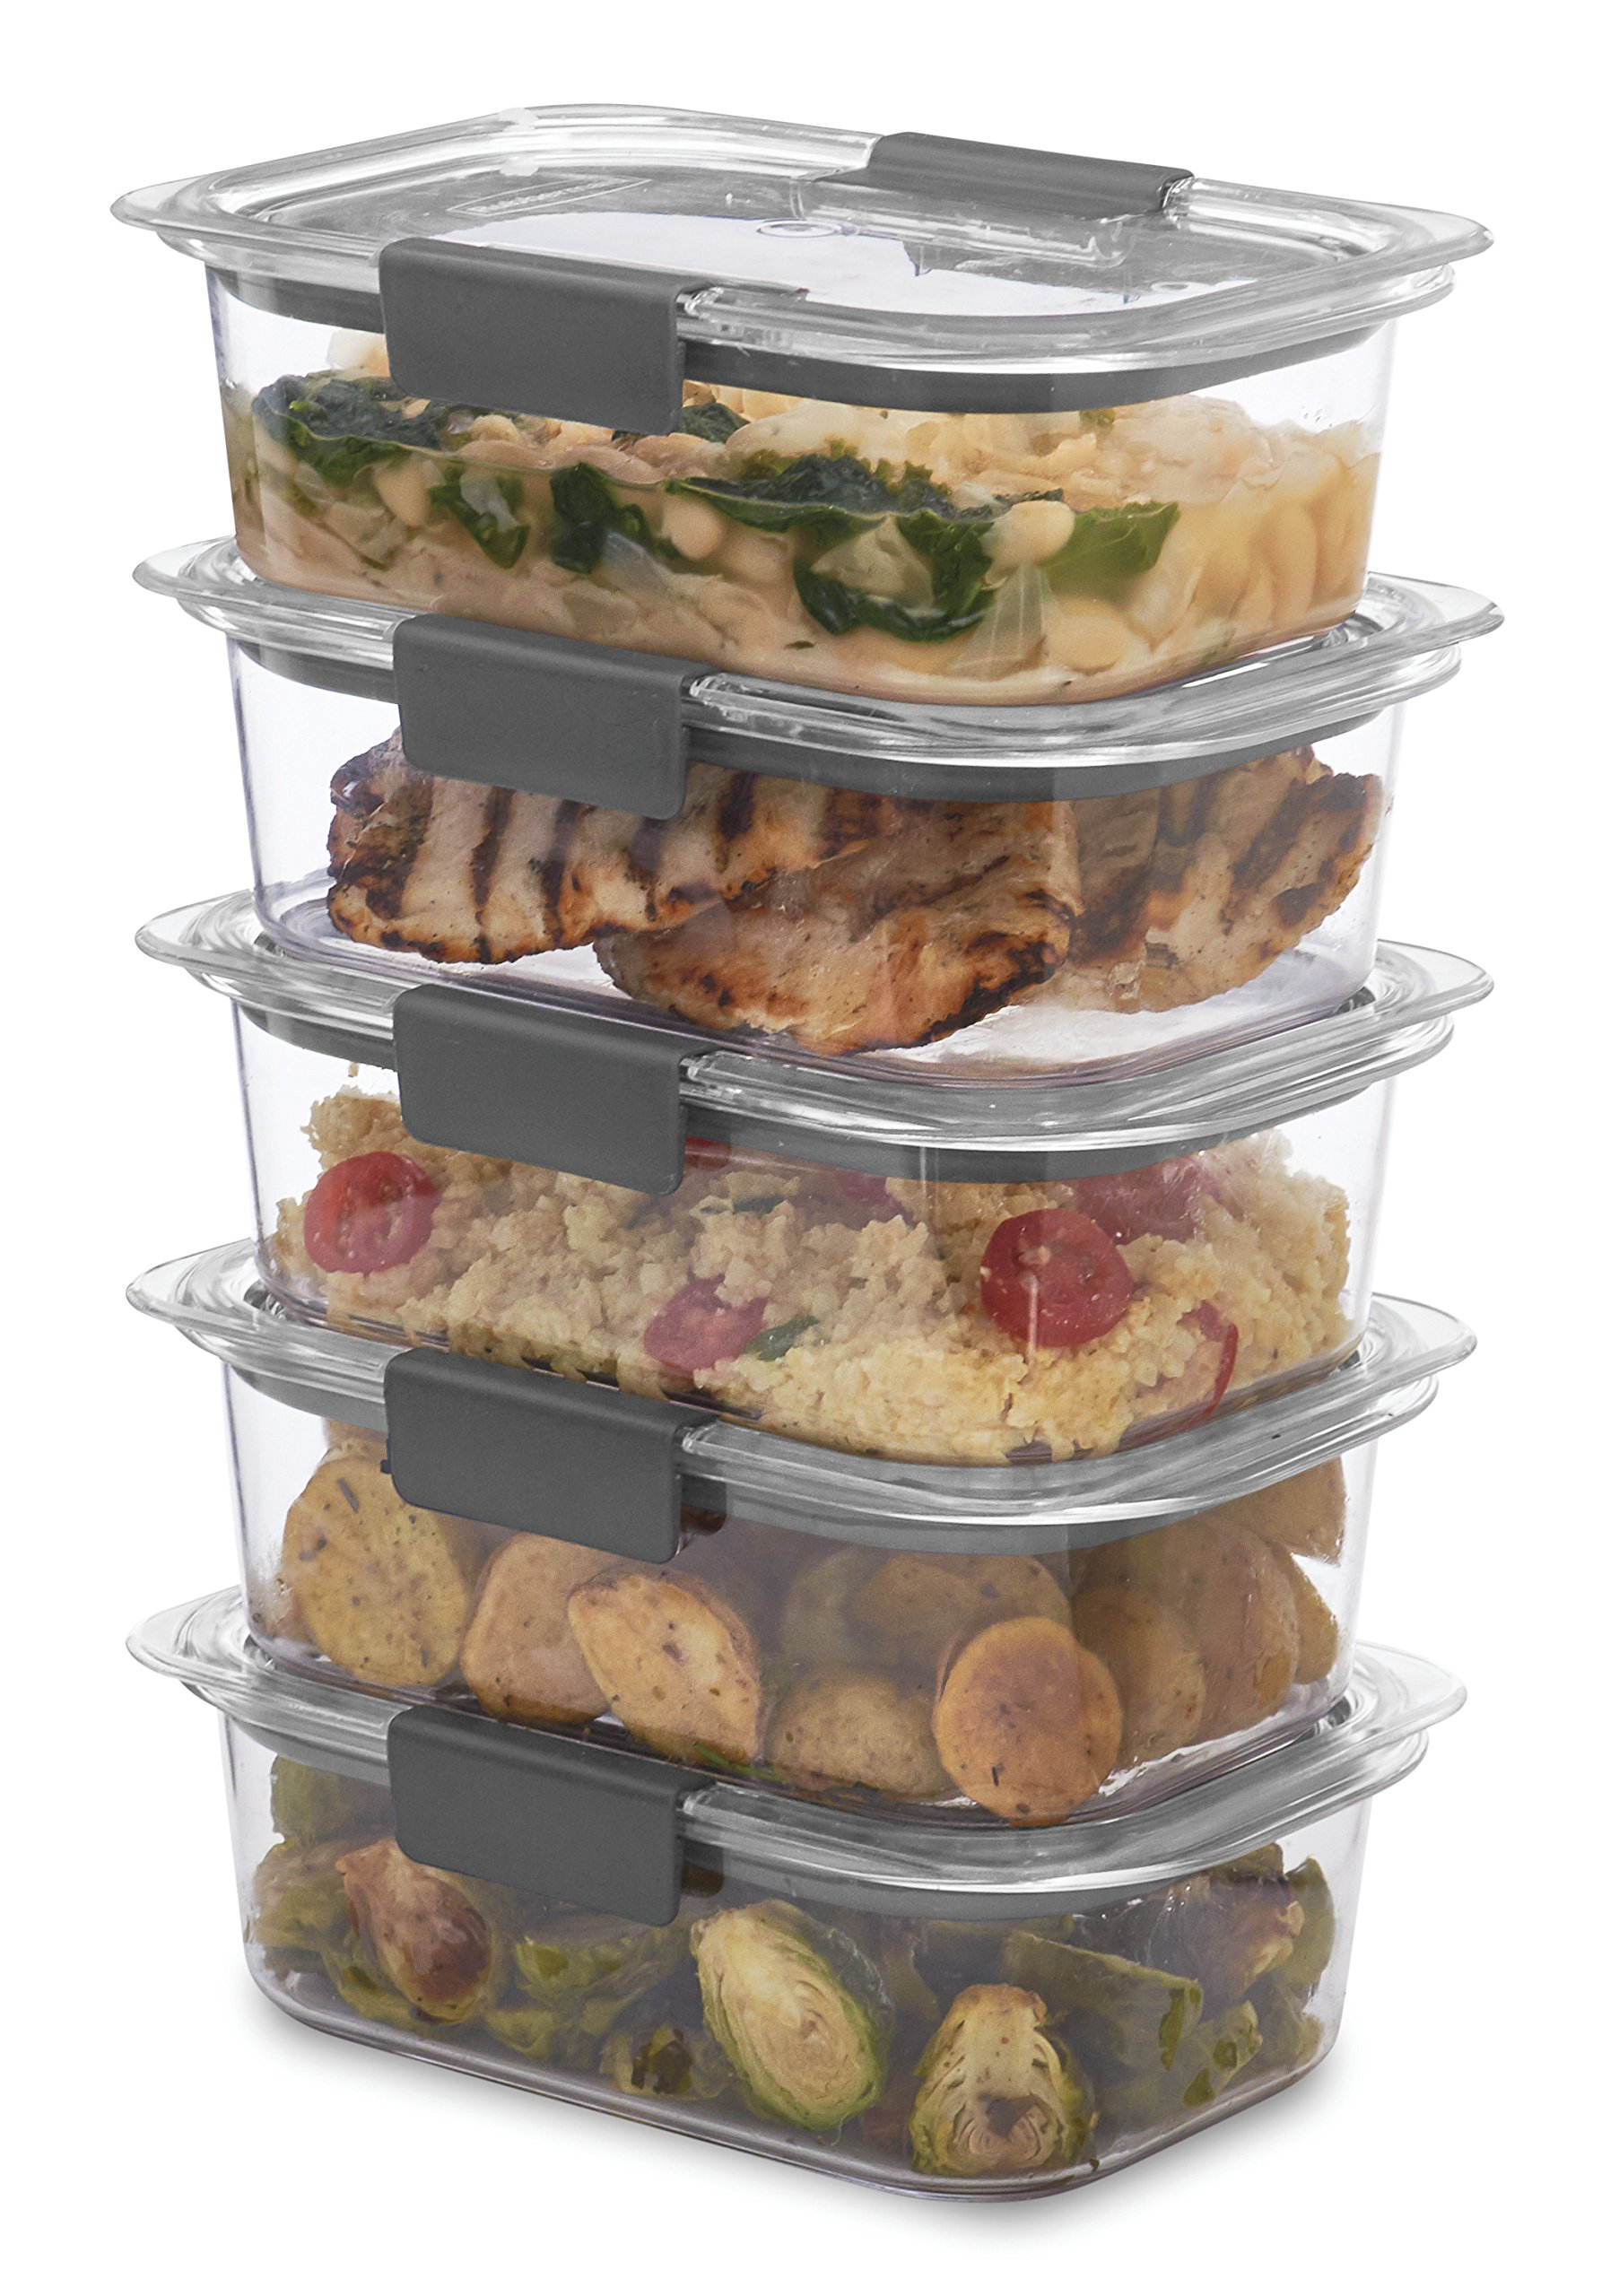 Rubbermaid Brilliance Food Storage Container, BPA-free Plastic, Medium, 3.2 Cup, 5-Pack, Clear by Rubbermaid (Image #3)